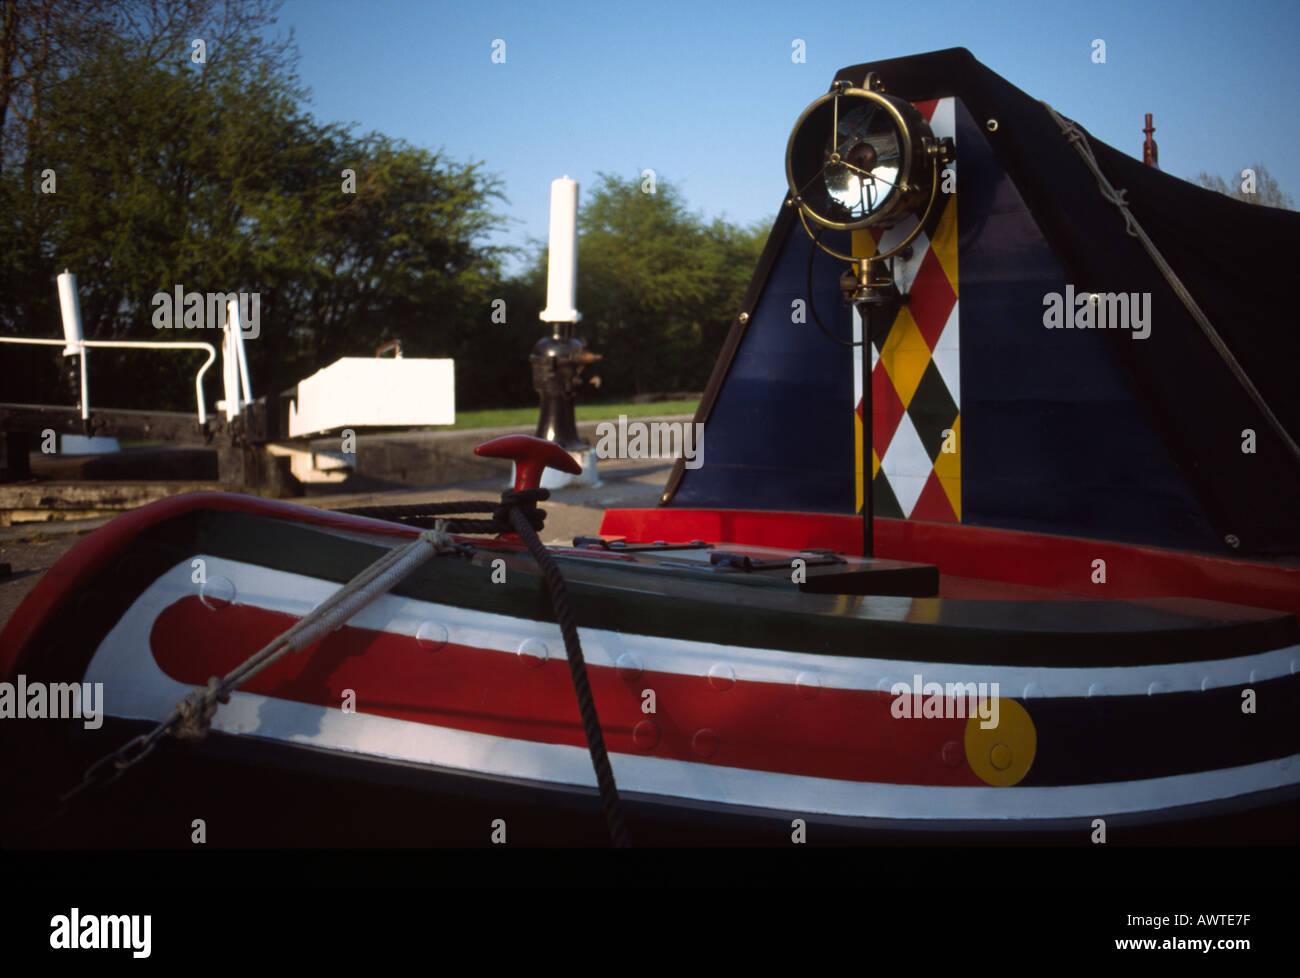 PICTURE CREDIT DOUG BLANE Traditional narrowboat with canal lock in background Grand Union Junction CanalStock Photo